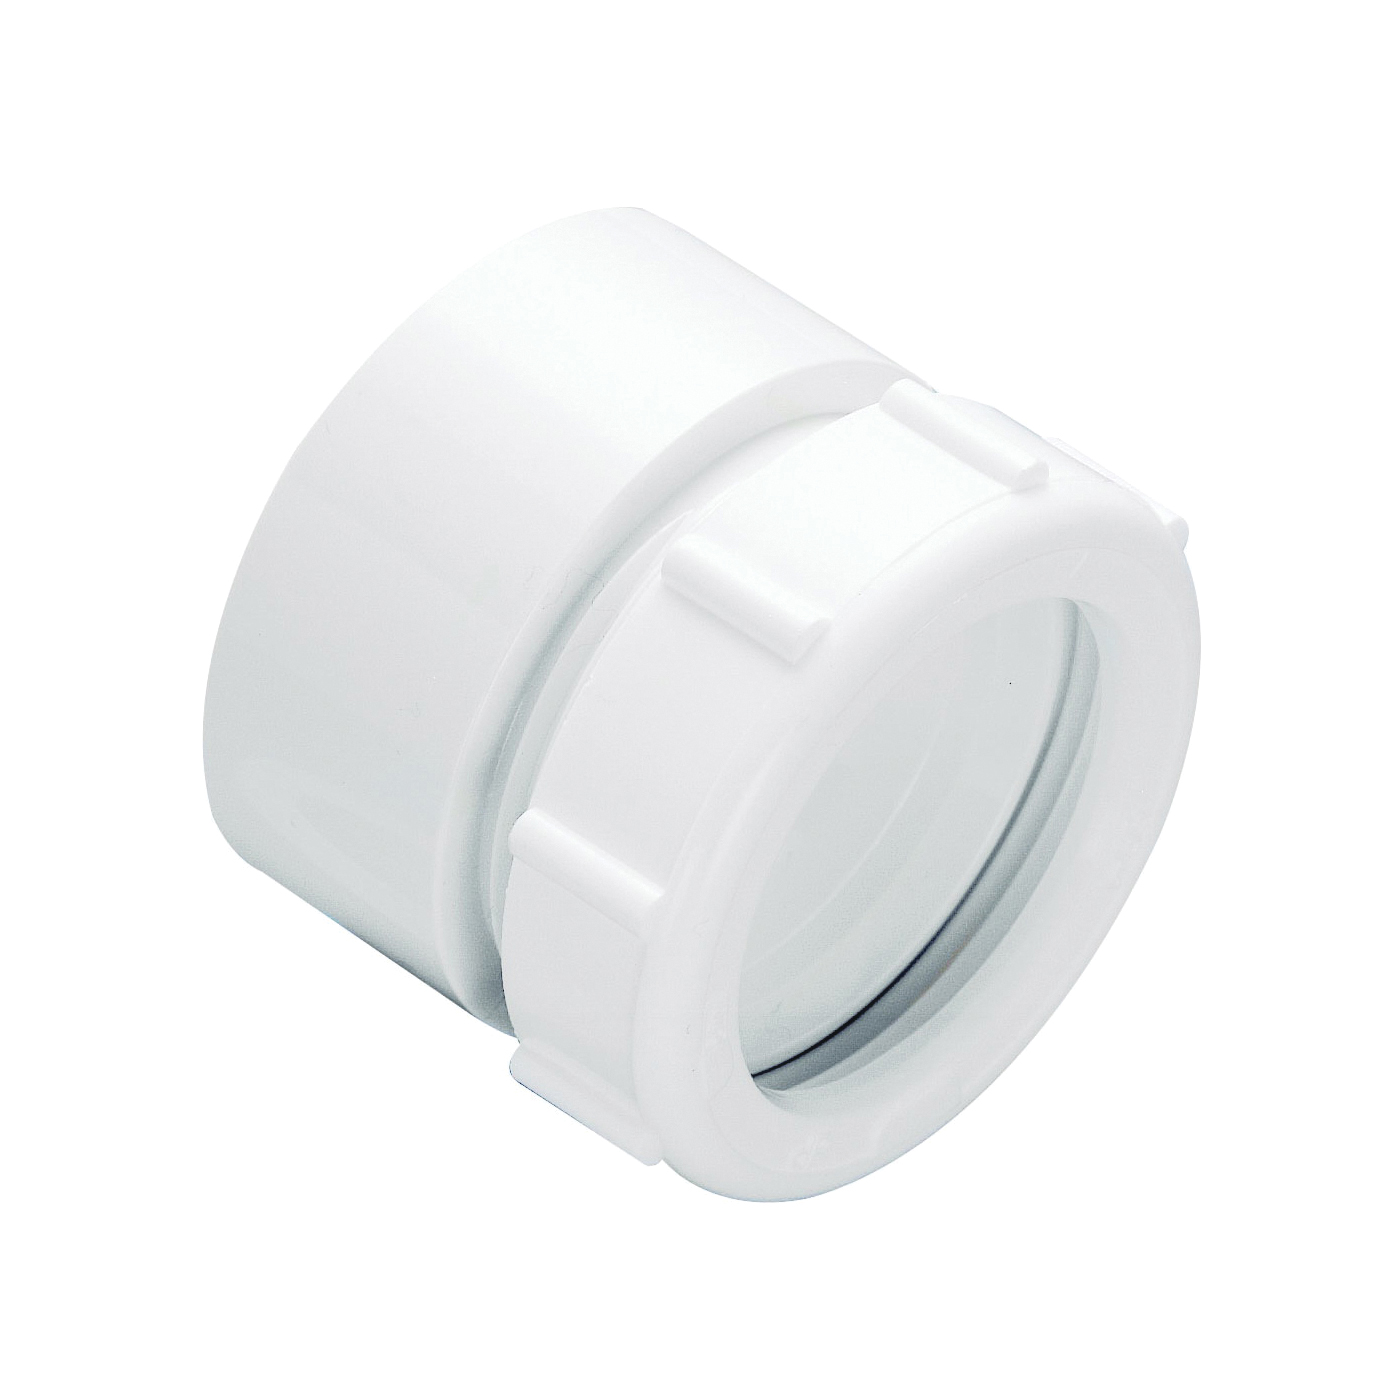 Picture of Plumb Pak PP999W Marvel Connector, 1-1/2 in Compression, 1-1/2 in Compression, White